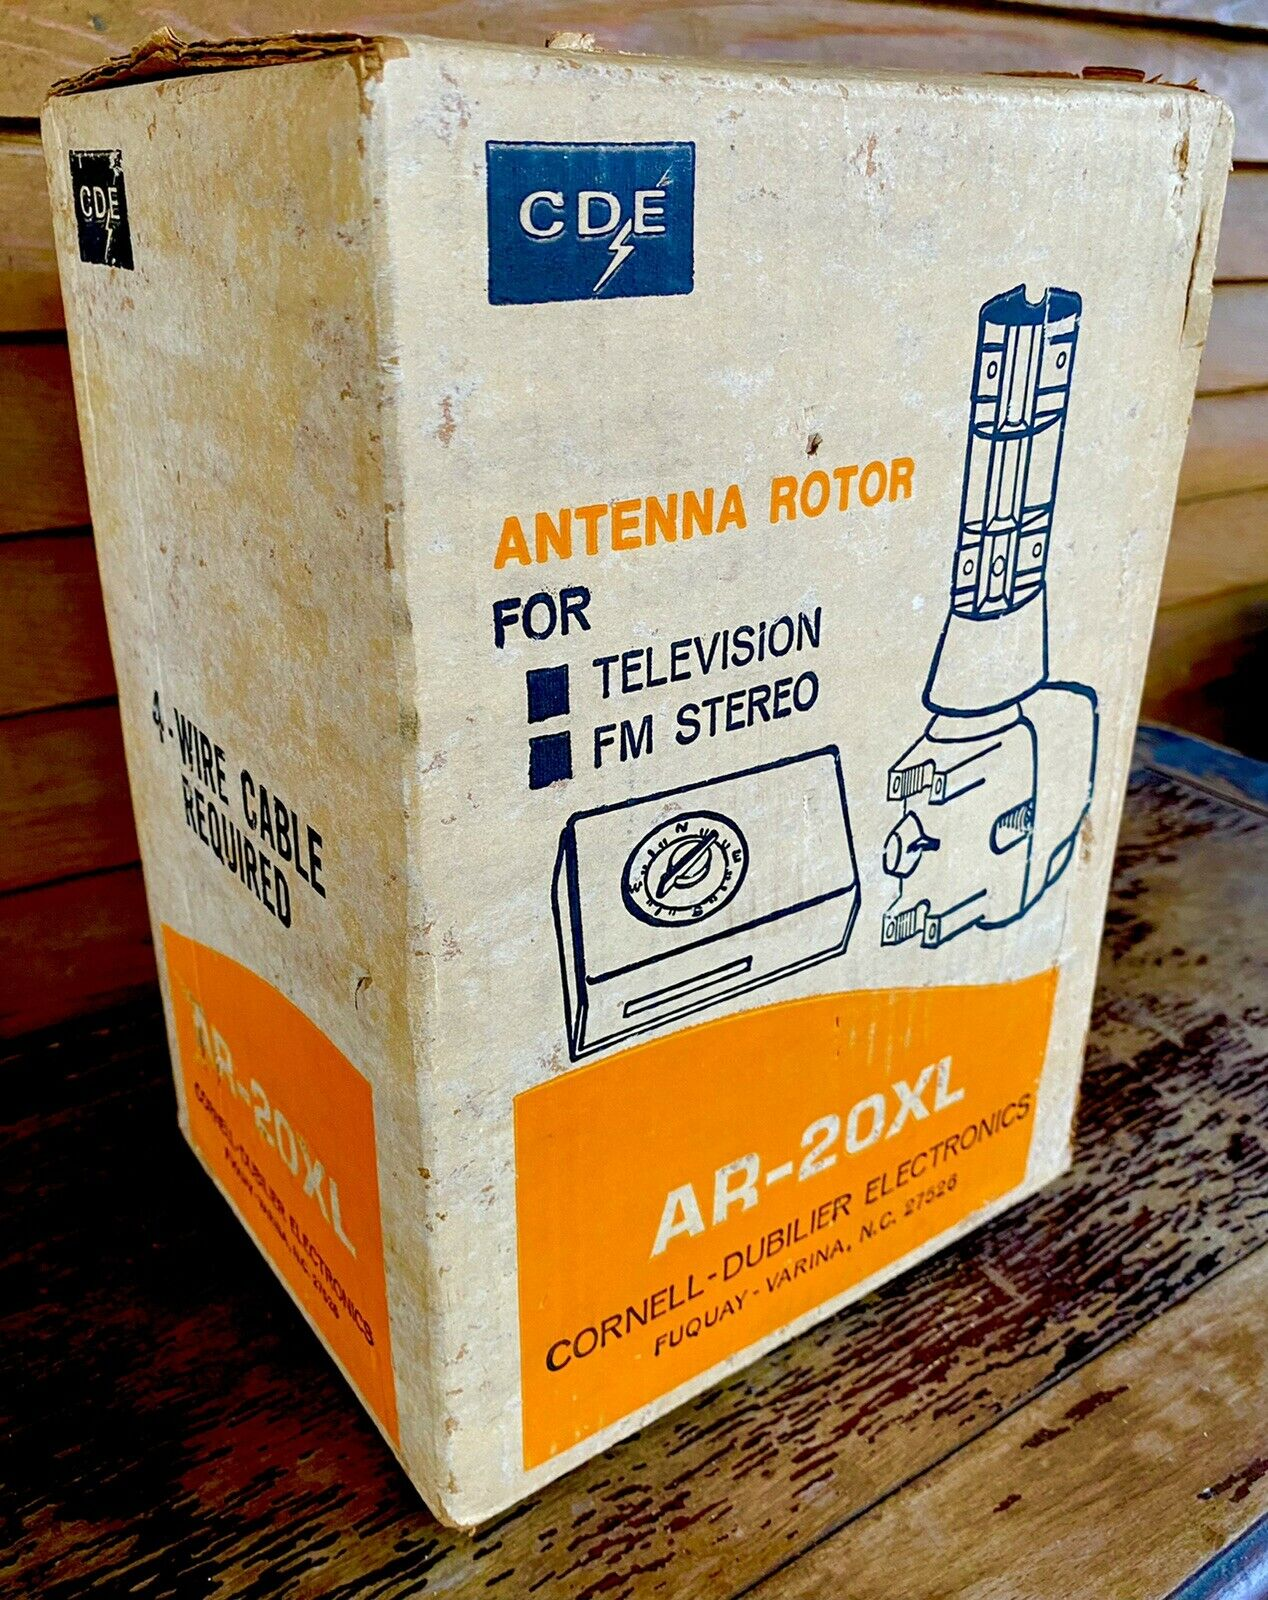 Vintage CDE Antenna Rotor AR-20XL NOS Sealed Box Ham CB Radio. Available Now for 300.00